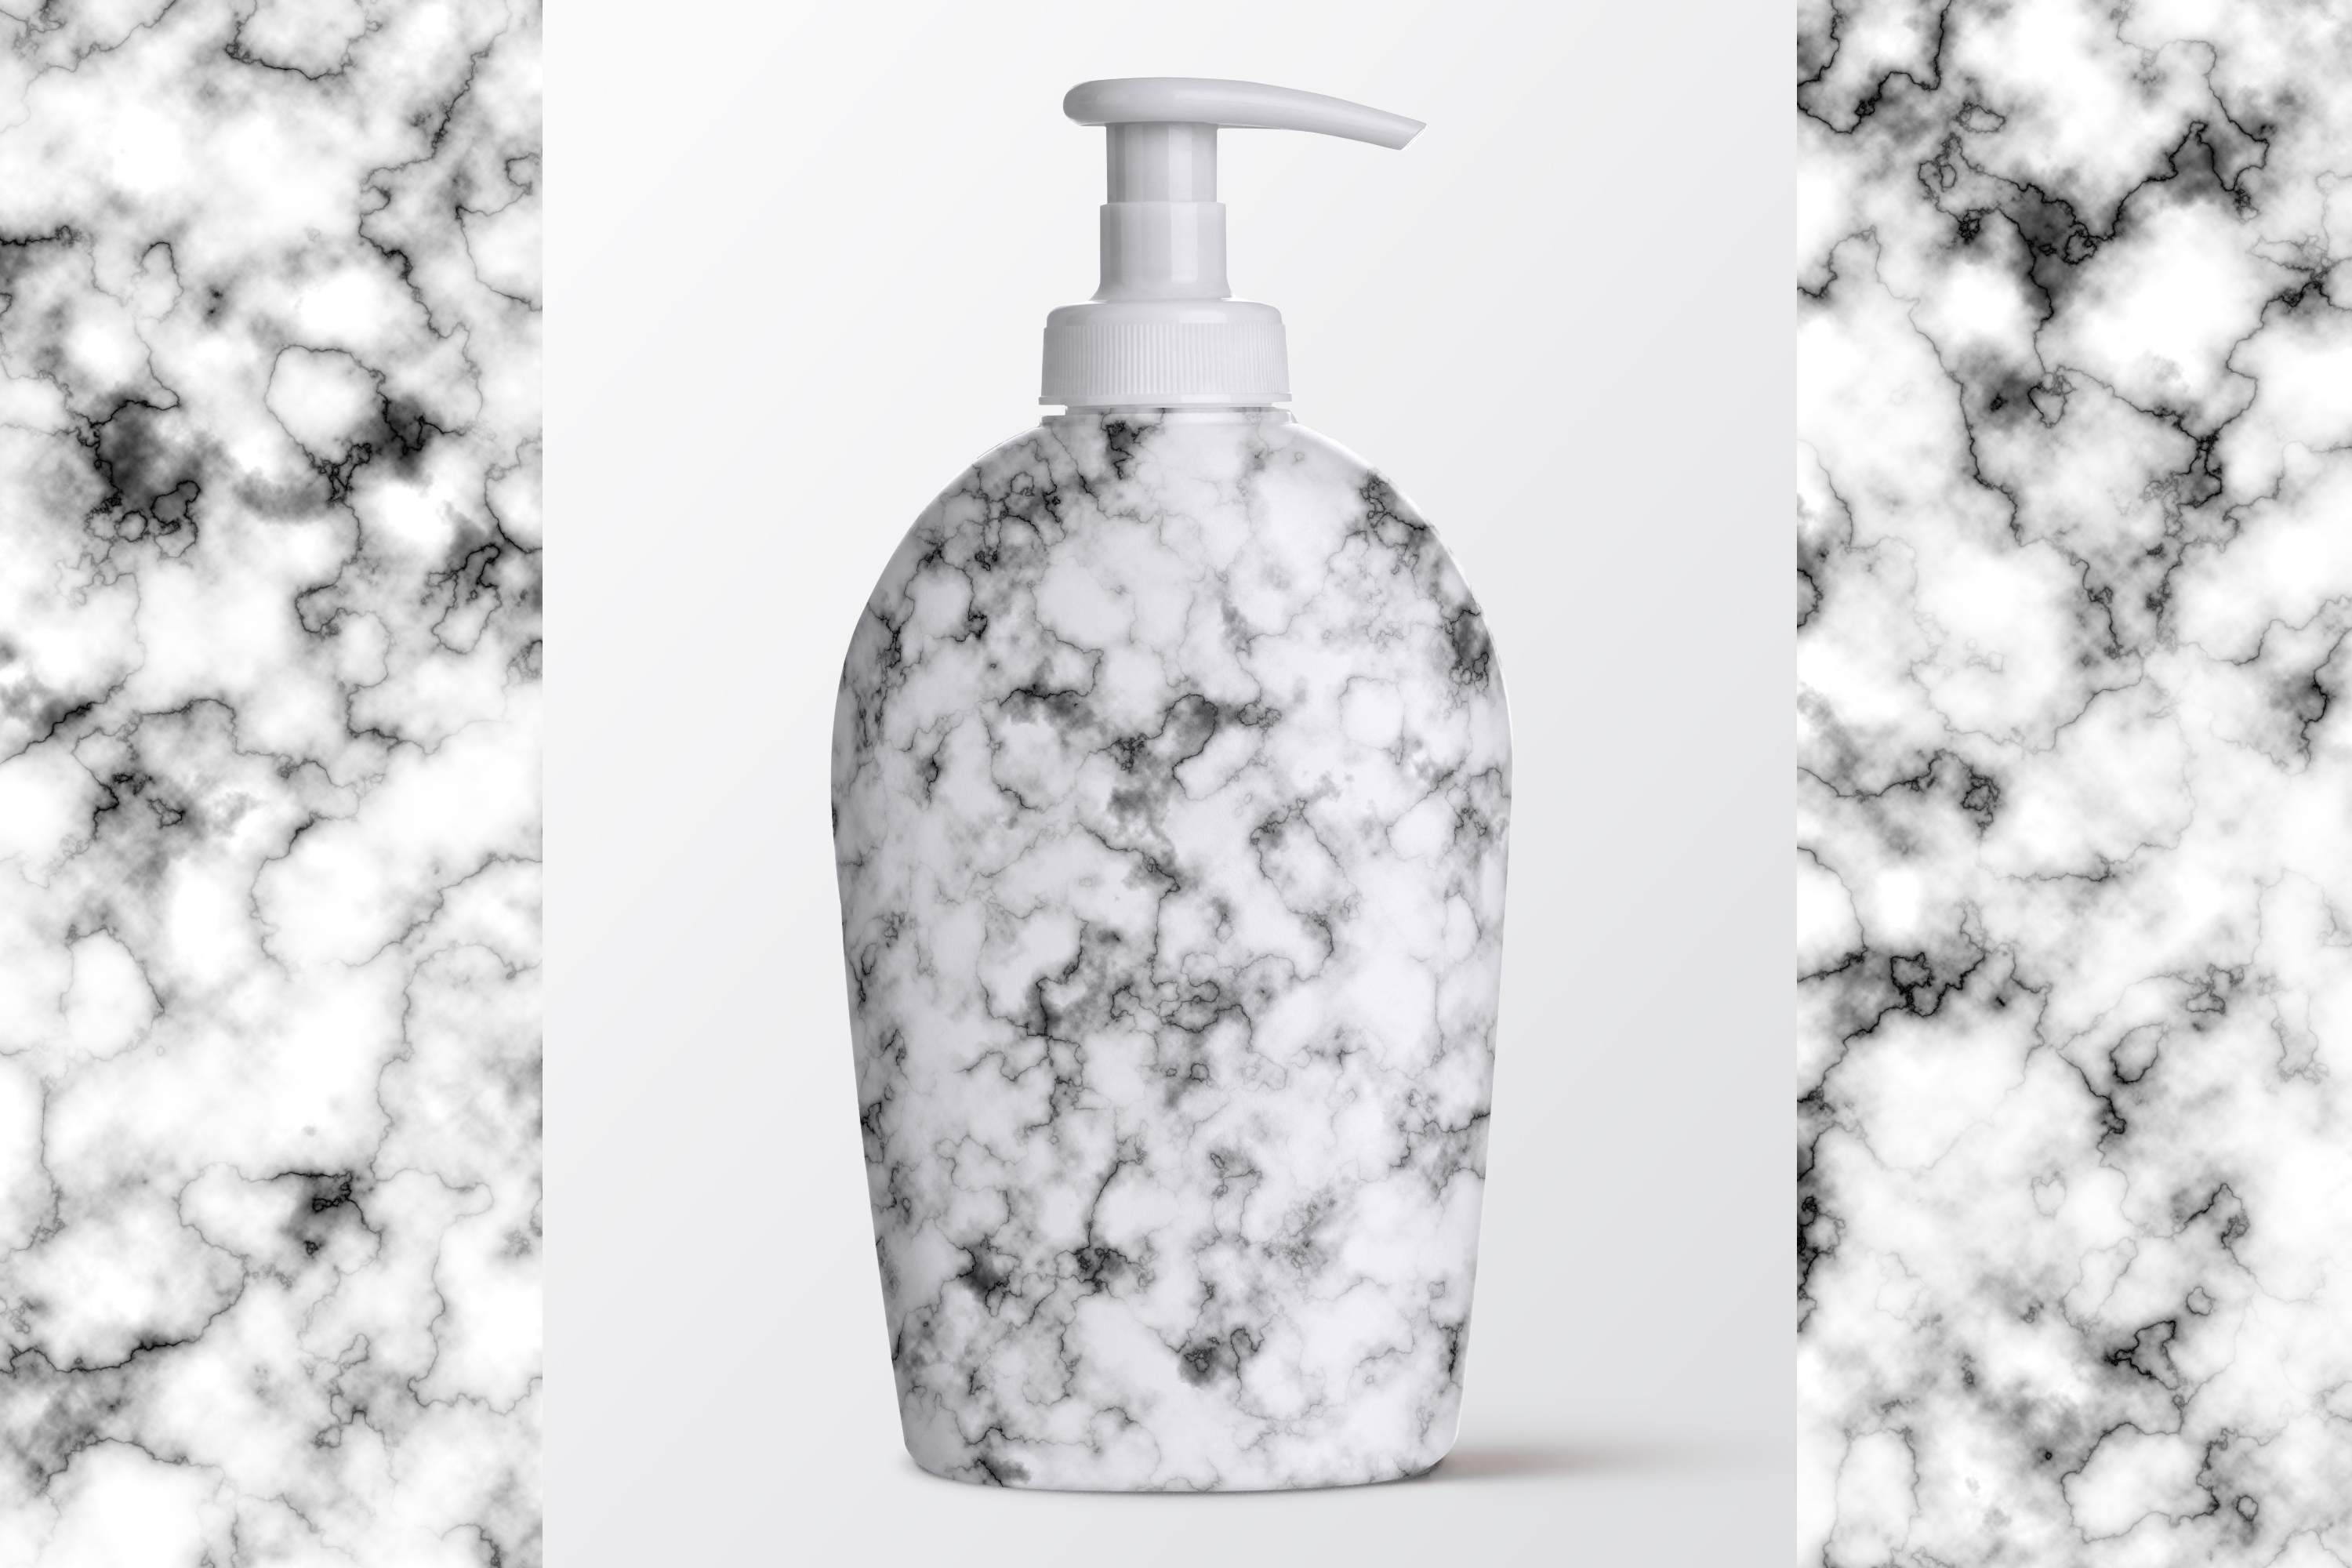 30 Realistic Marble Textures - JPG example image 11